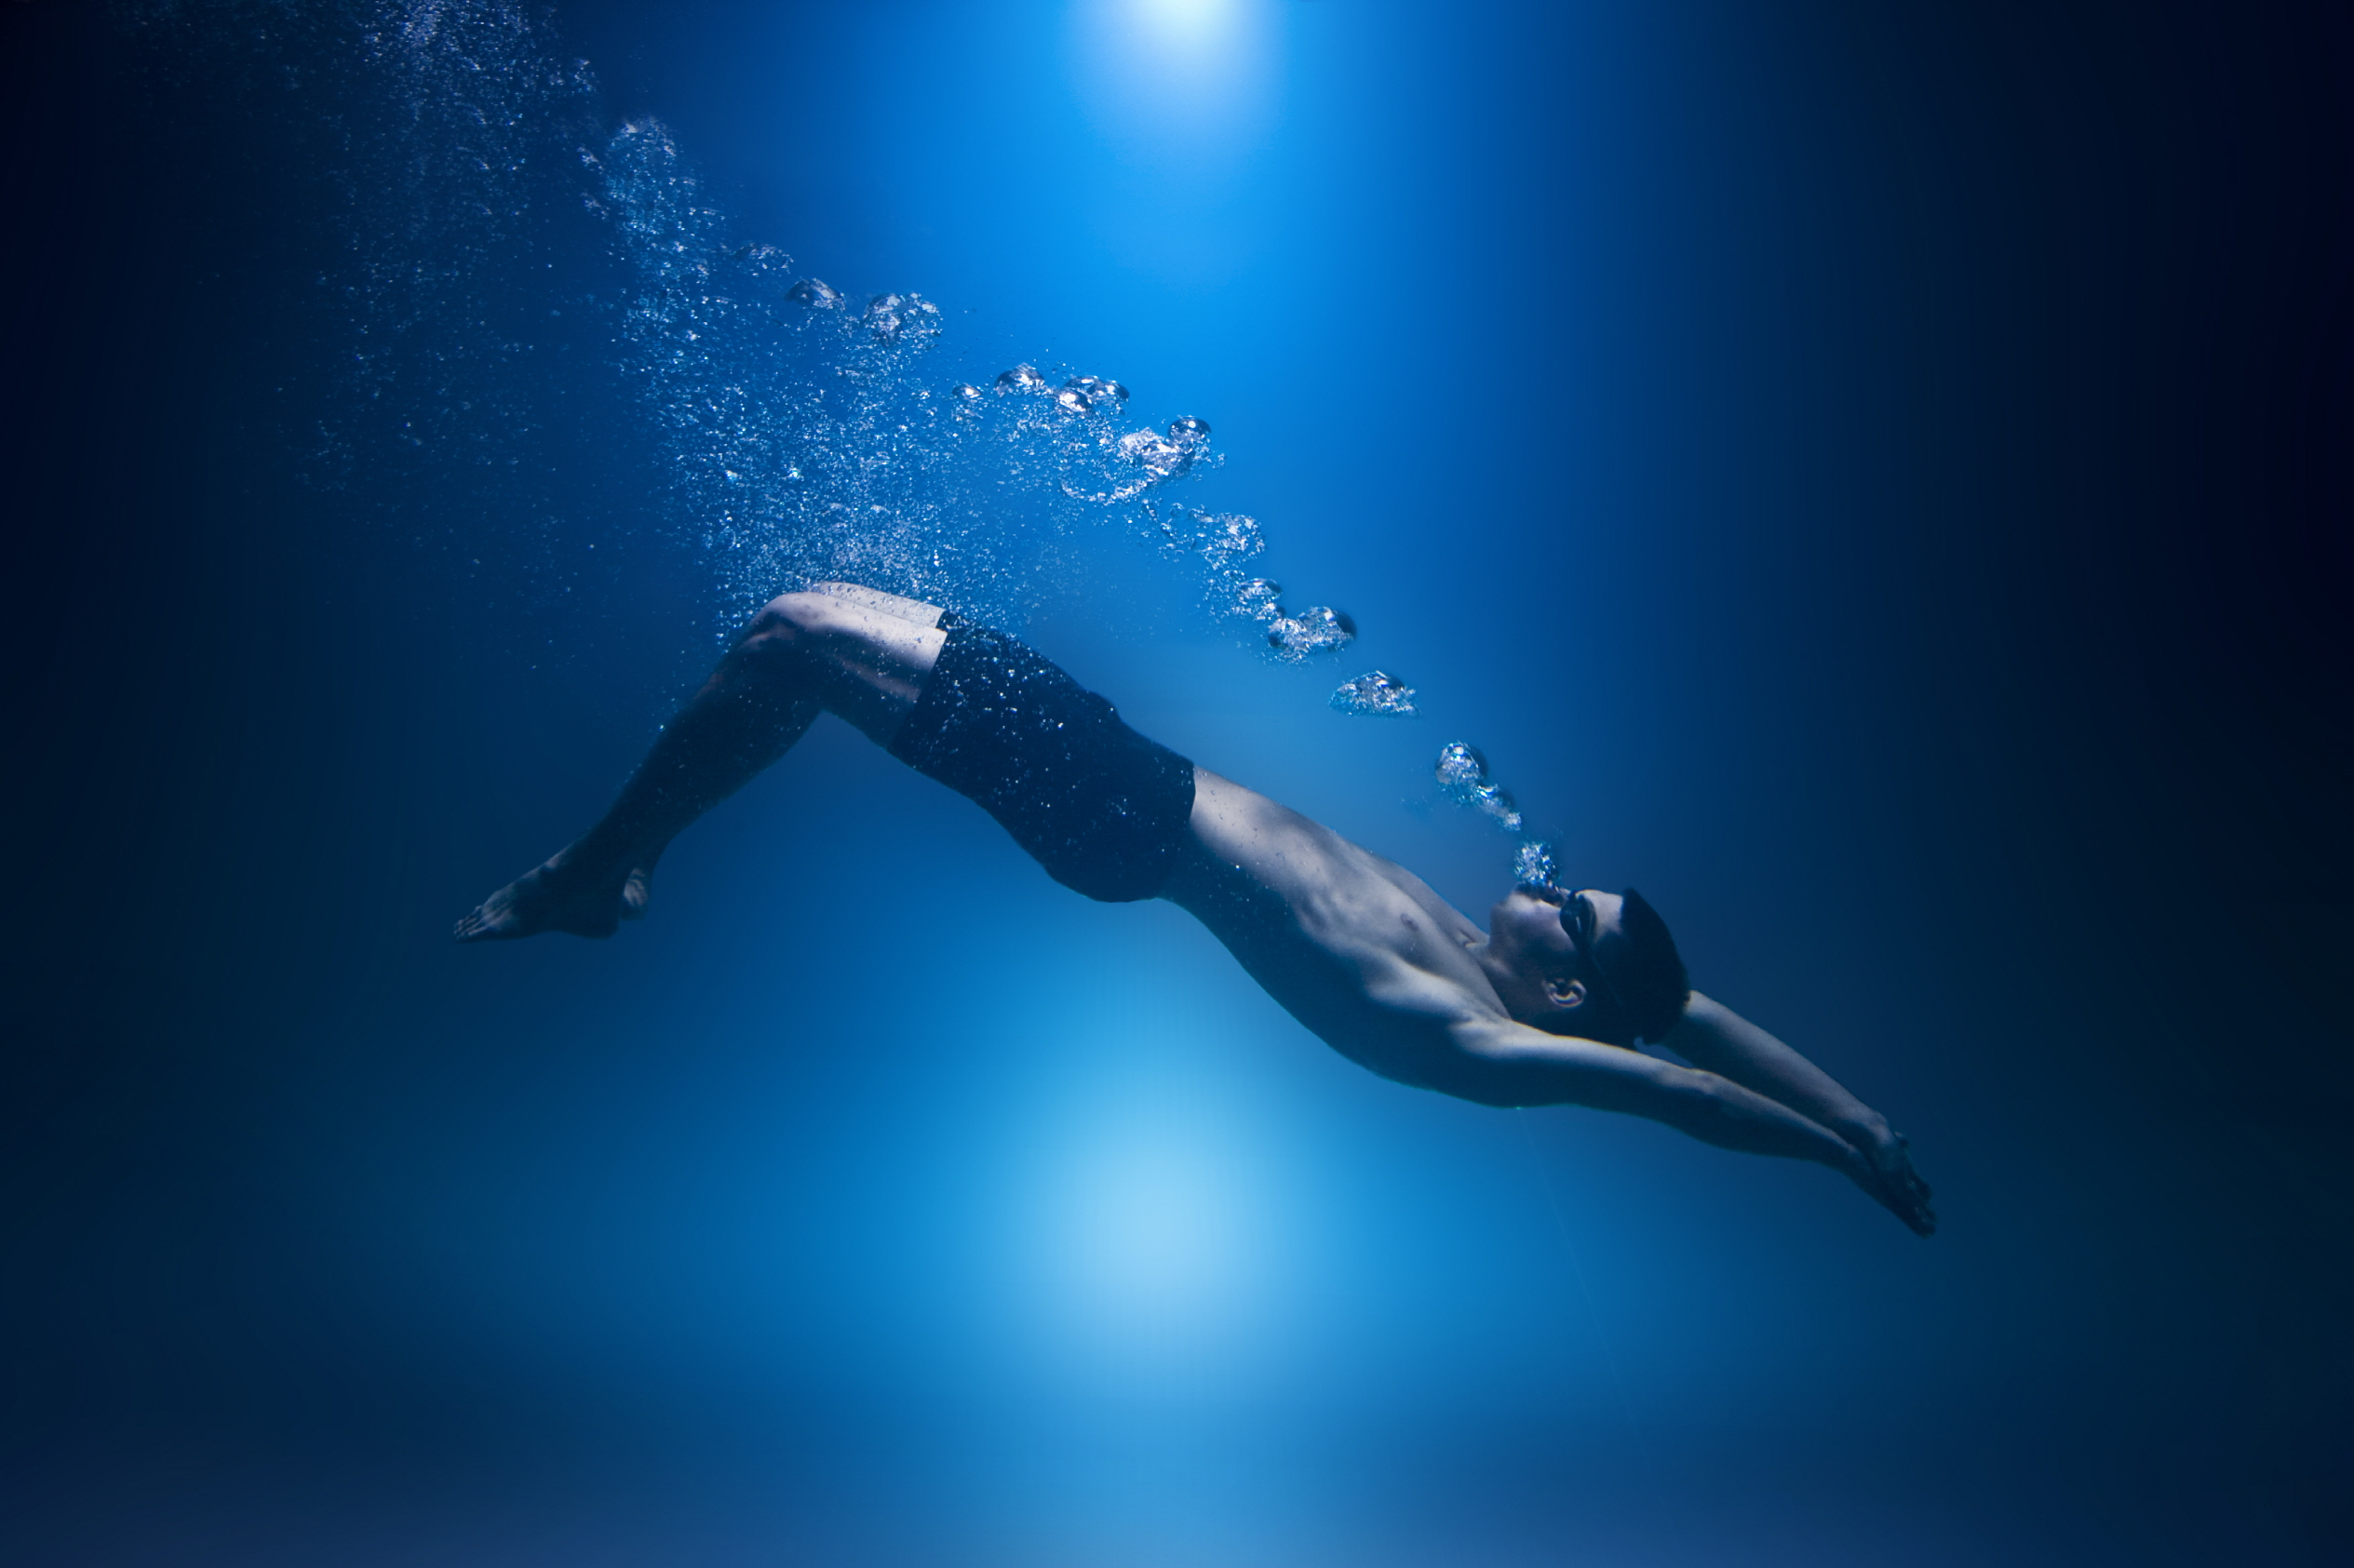 Swimmer underwater isolted exhaling bubbles blue background